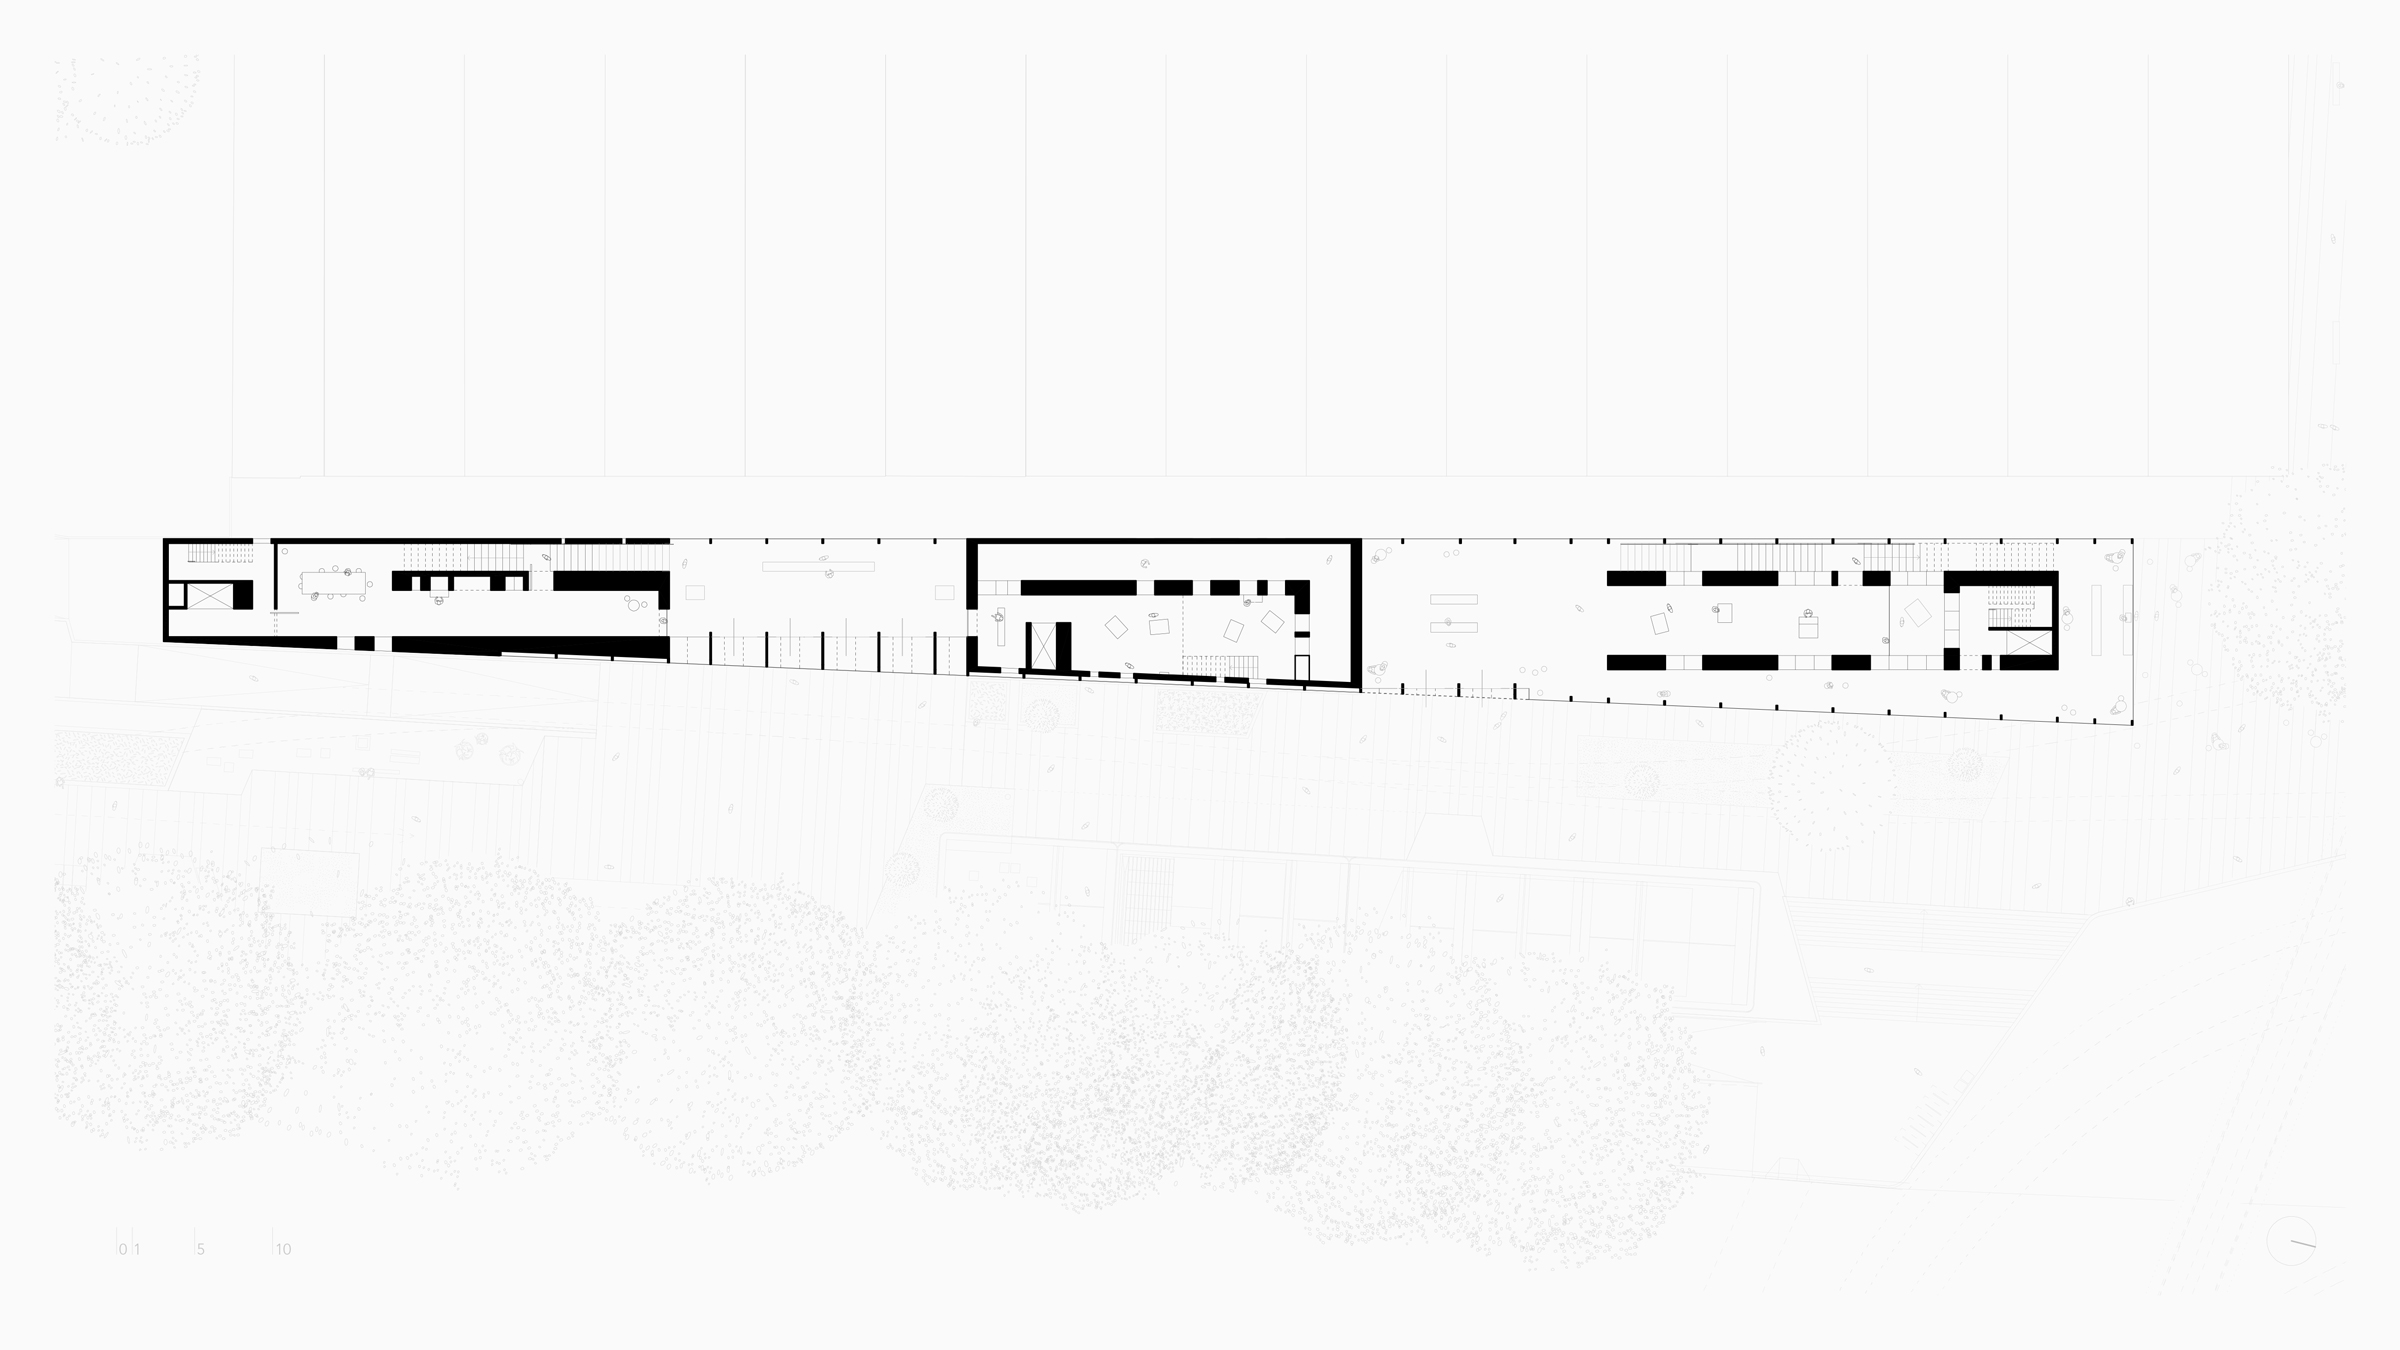 SYDNEY-ARCHITECT-TRIAS-STUDIO-MUSEUM-JORN-UTZON-PLAN-03